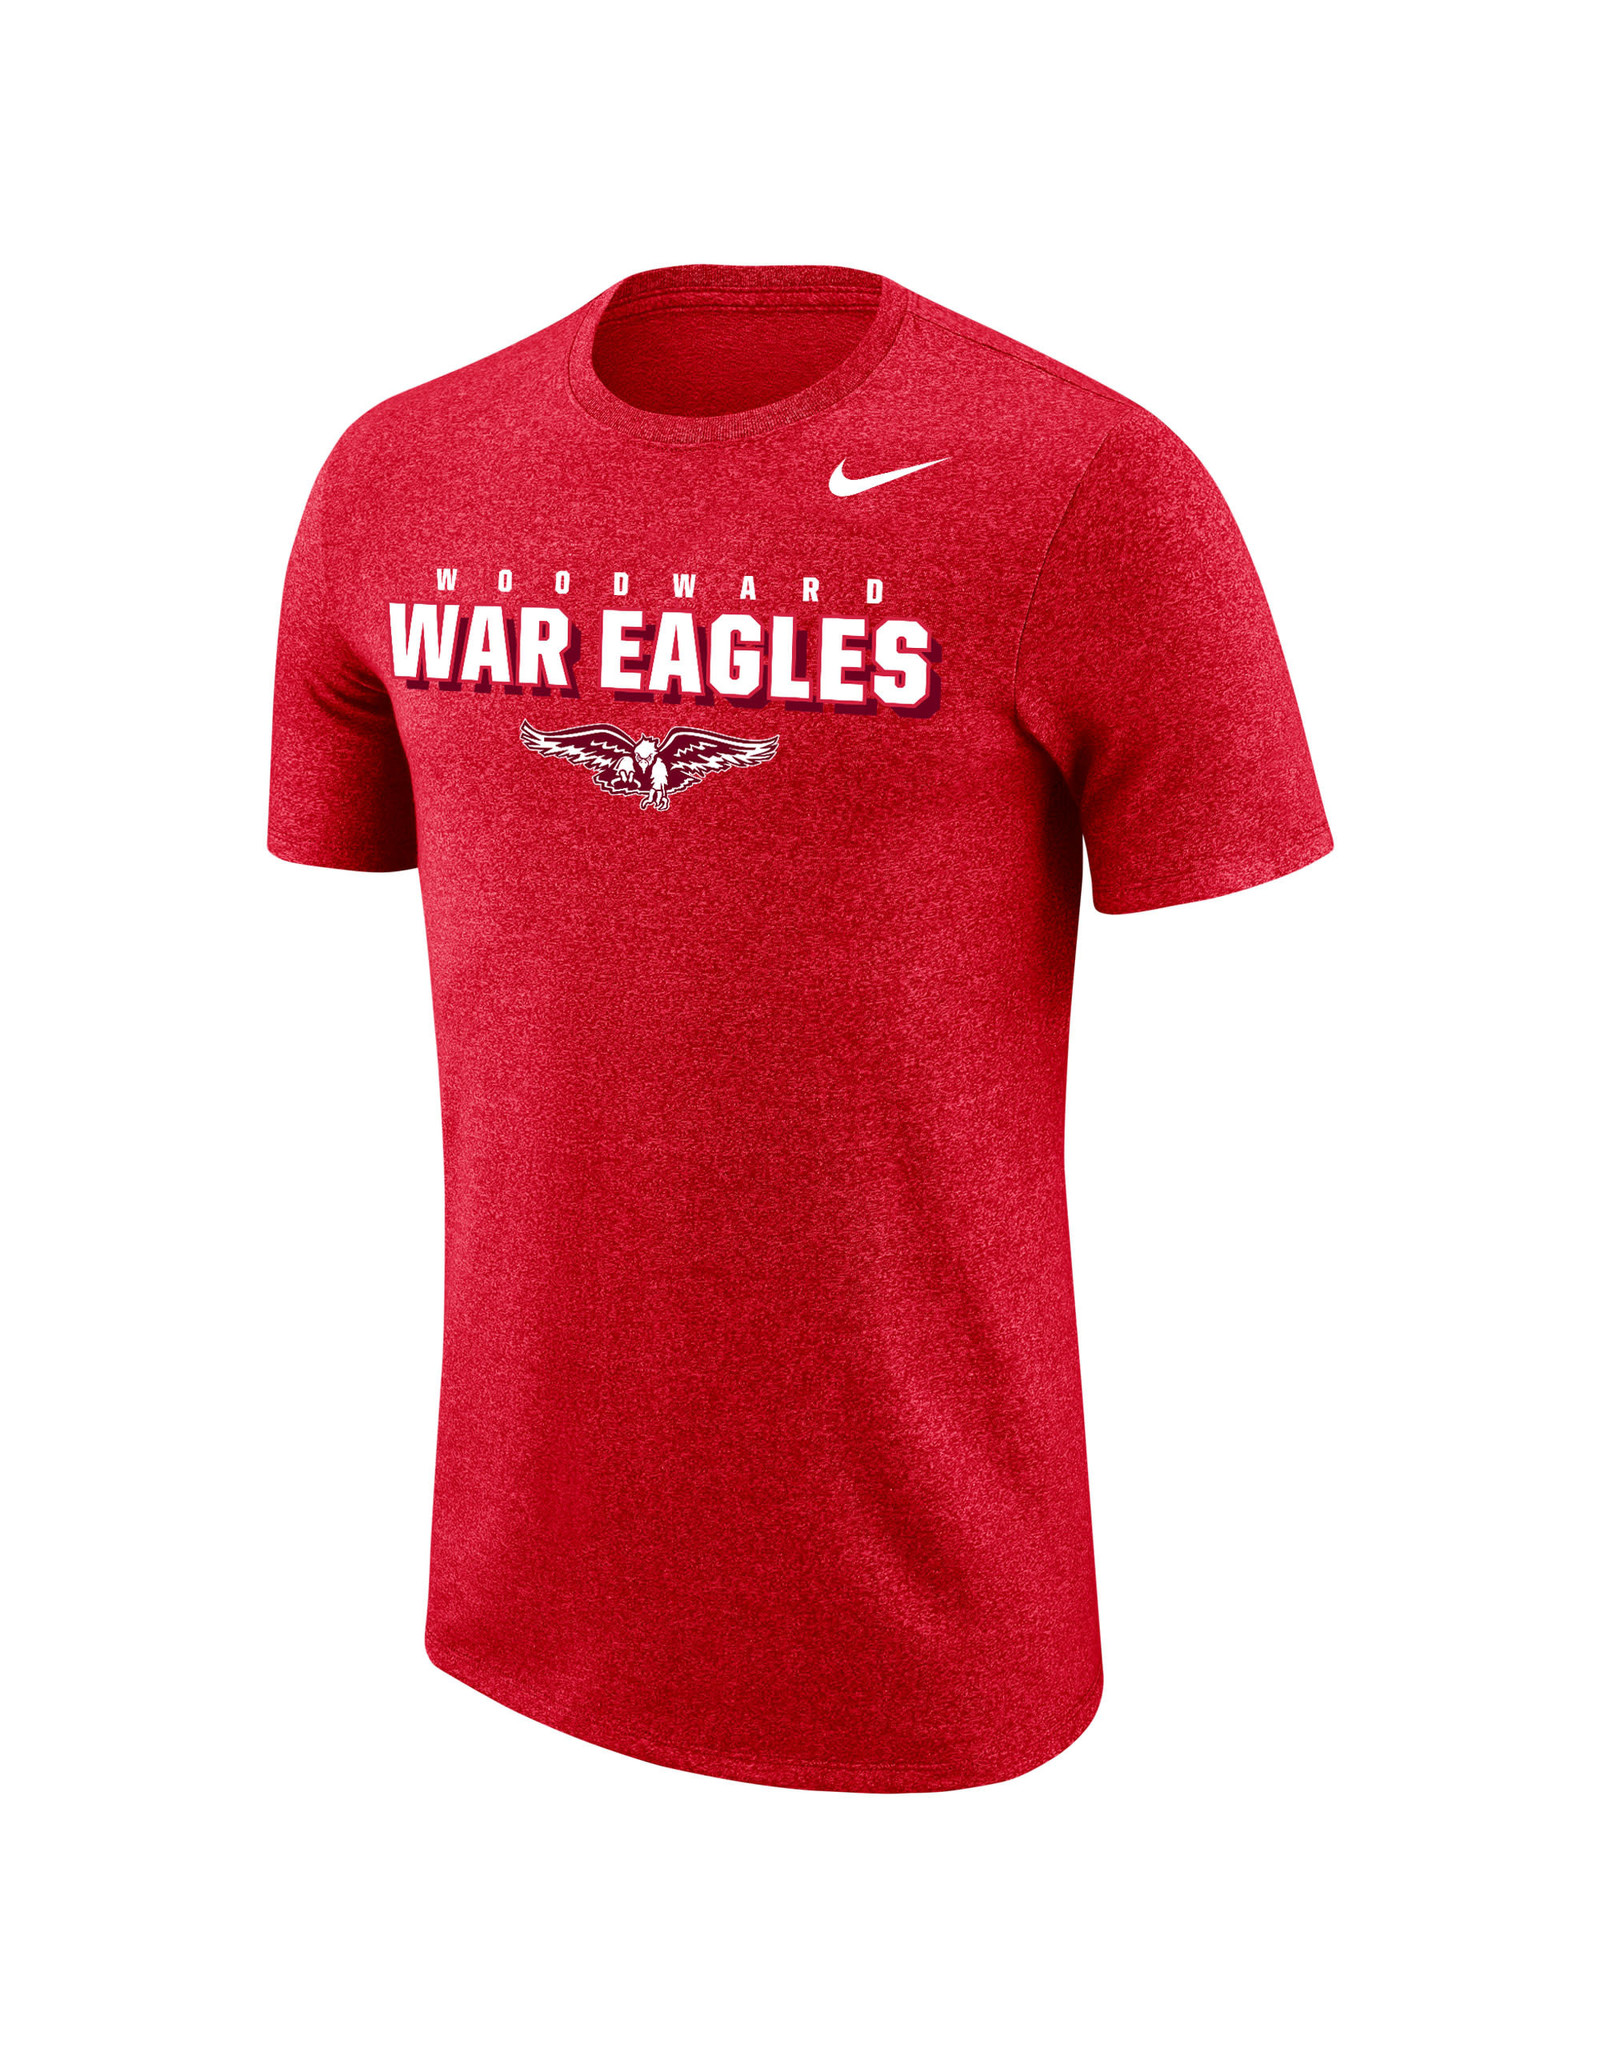 NIKE Marled SS T Shirt in Red Heather